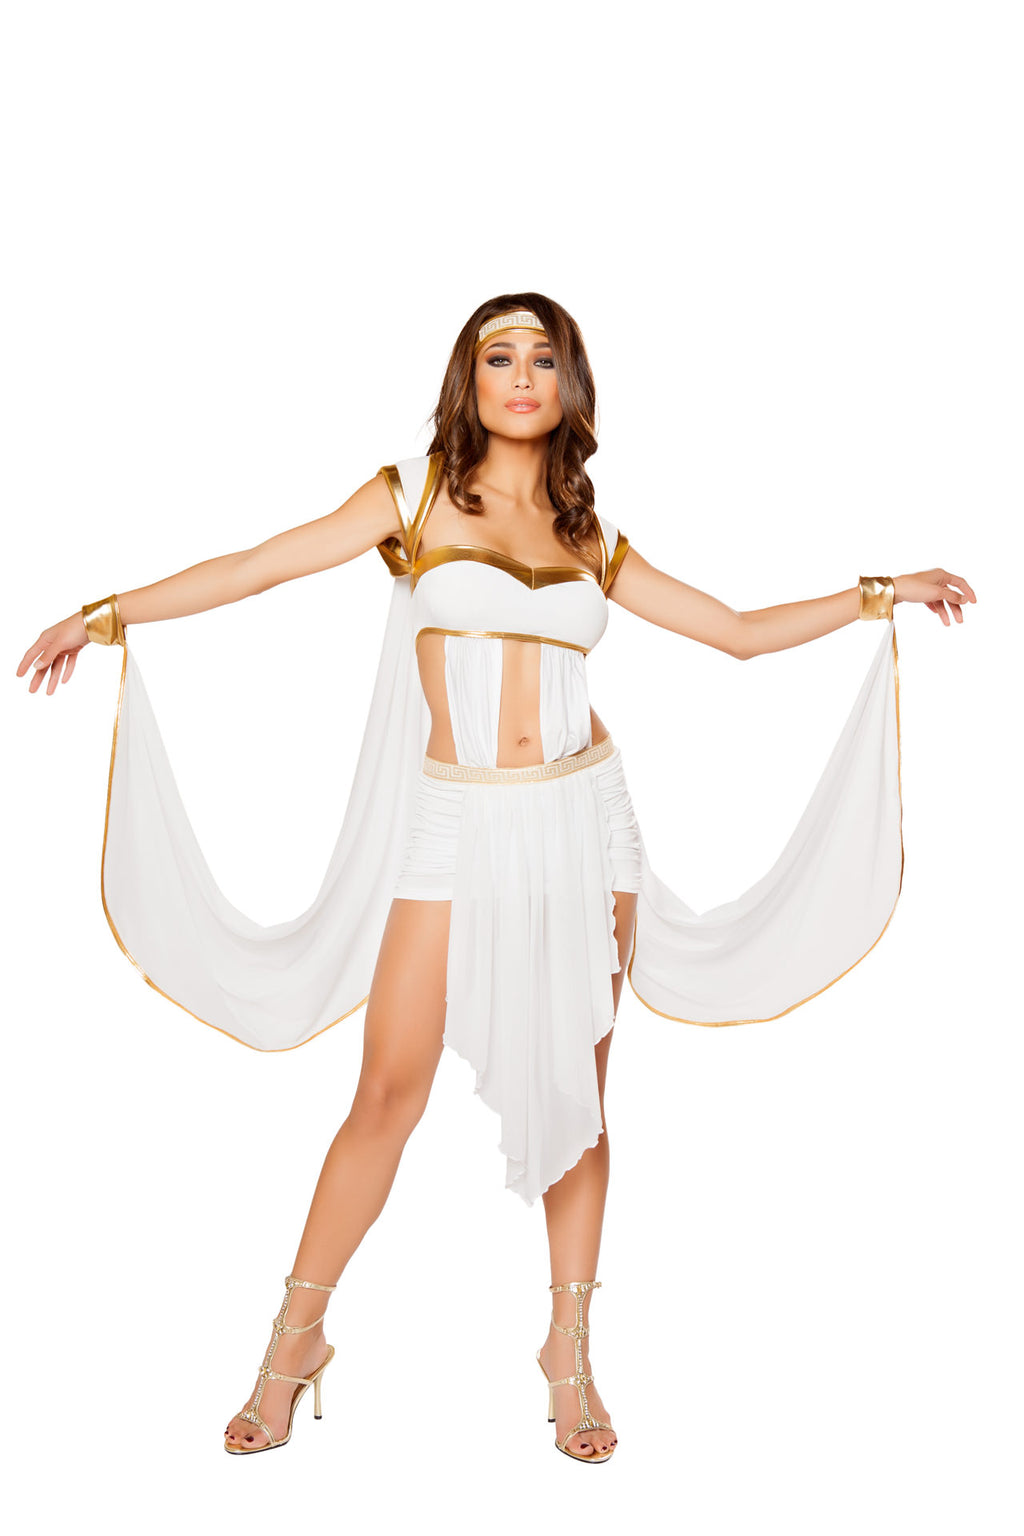 2-PC-Greek-Goddess-White-Dress-w/-attached-Wristcuffs-&-Headband-Party-Costume-